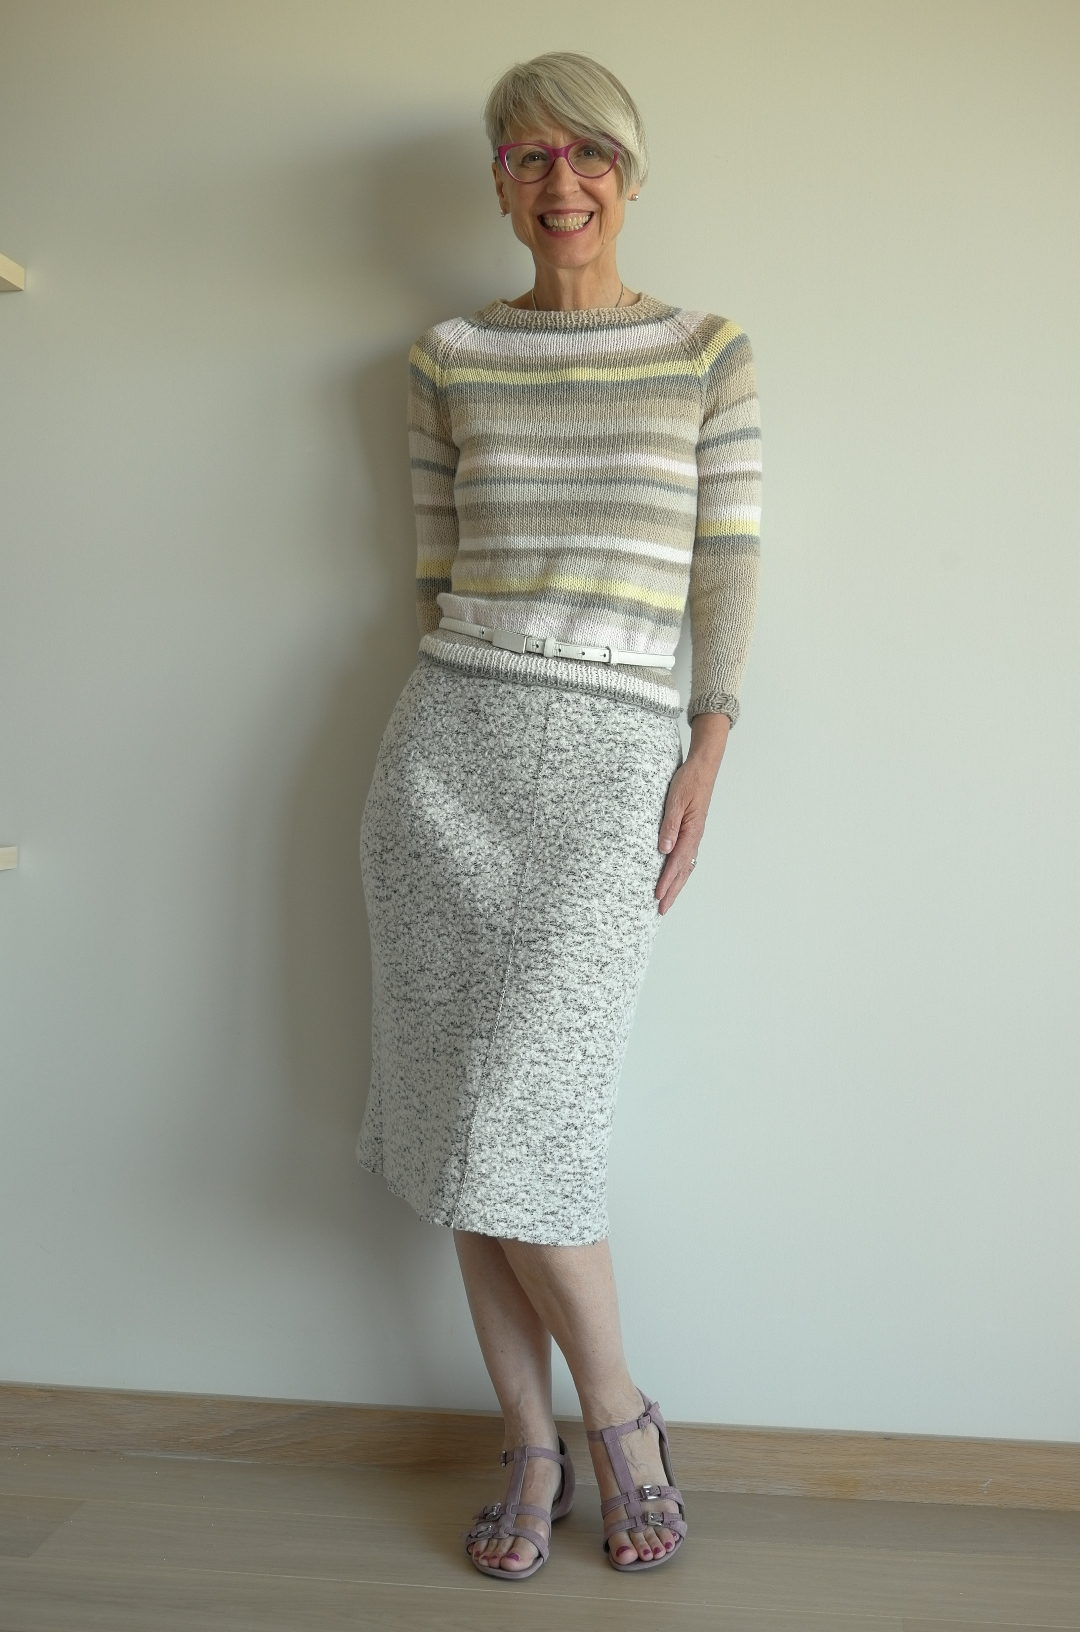 SWAP 18 EZ seamless raglan and self drafted pencil skirt